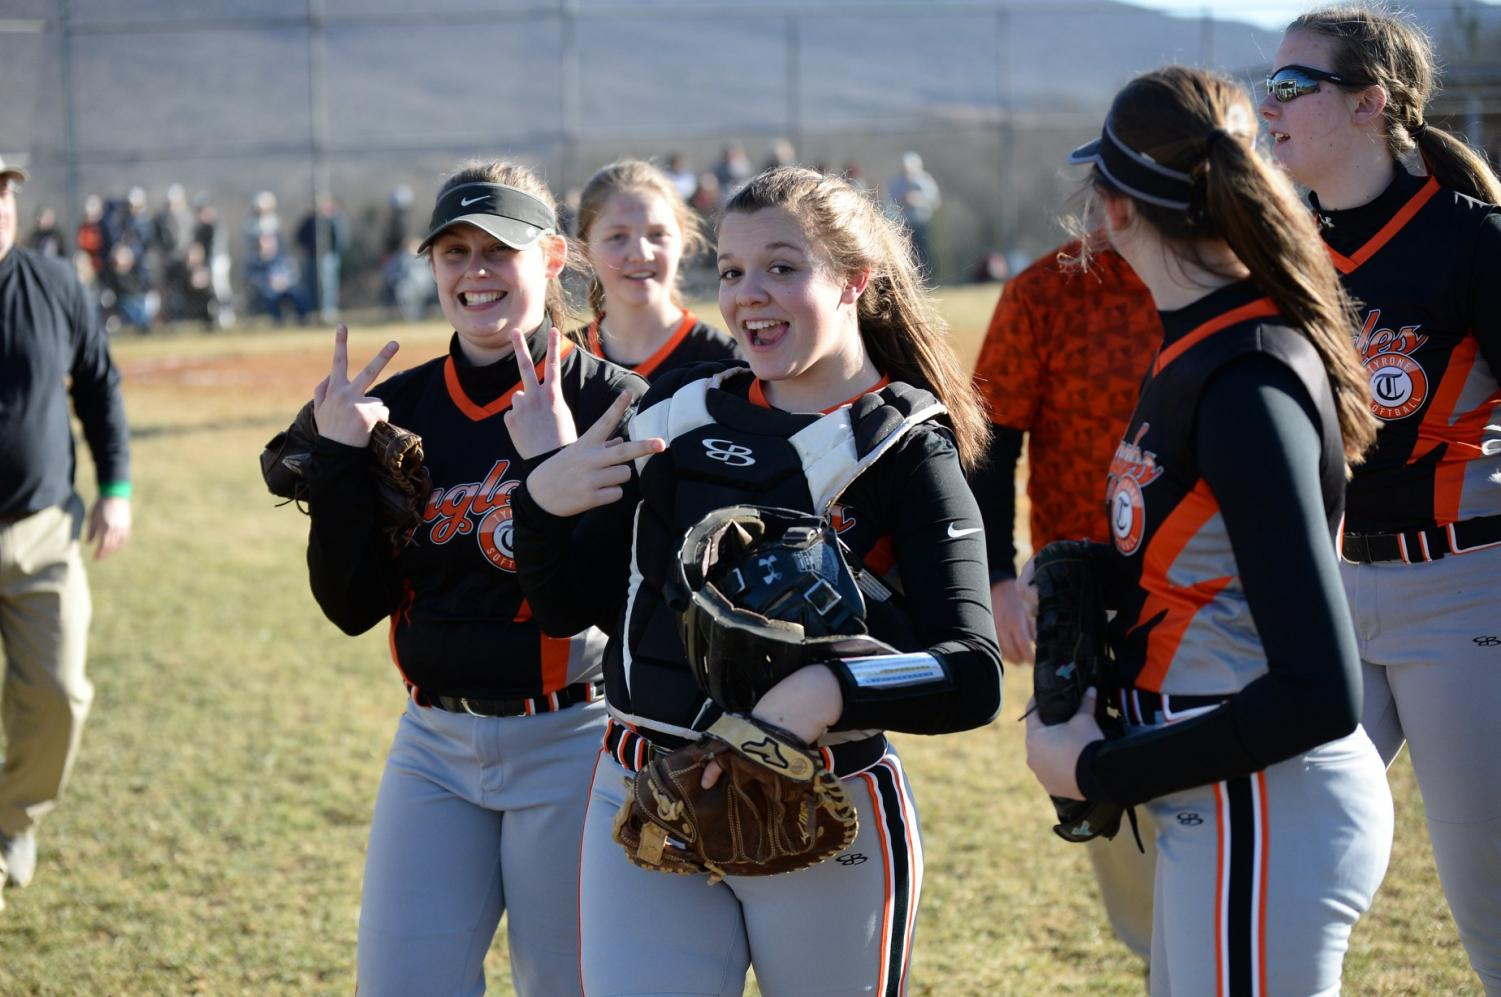 Juniors, Ally Jones and Callie Maceno throwing up peace signs in between innings.